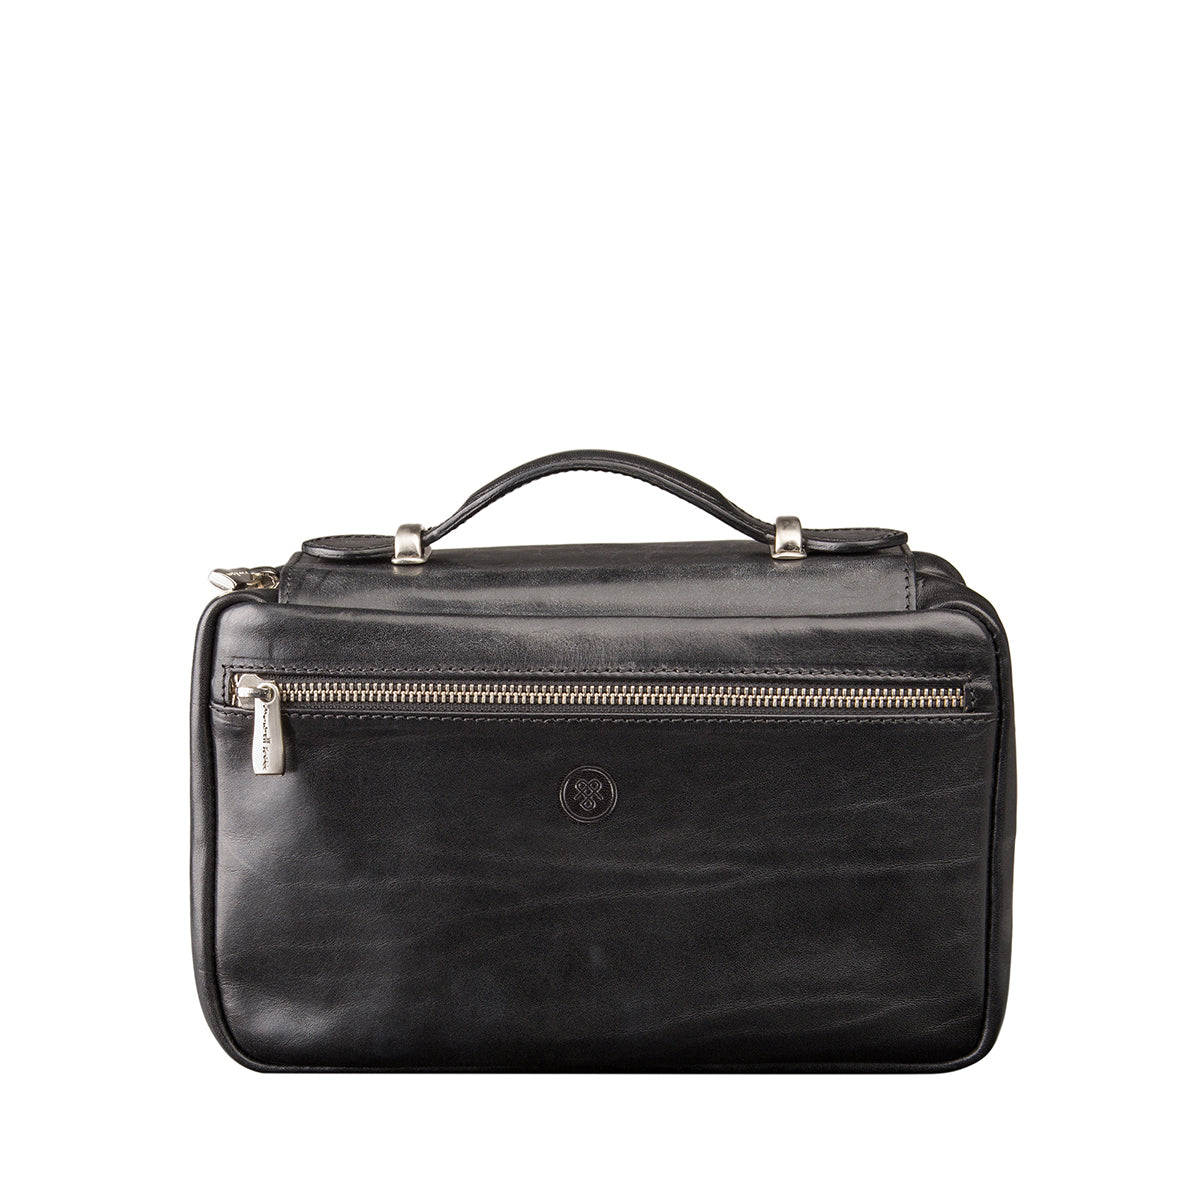 Image 1 of the 'Cascina' Black Veg-Tanned Leather Makeup Case